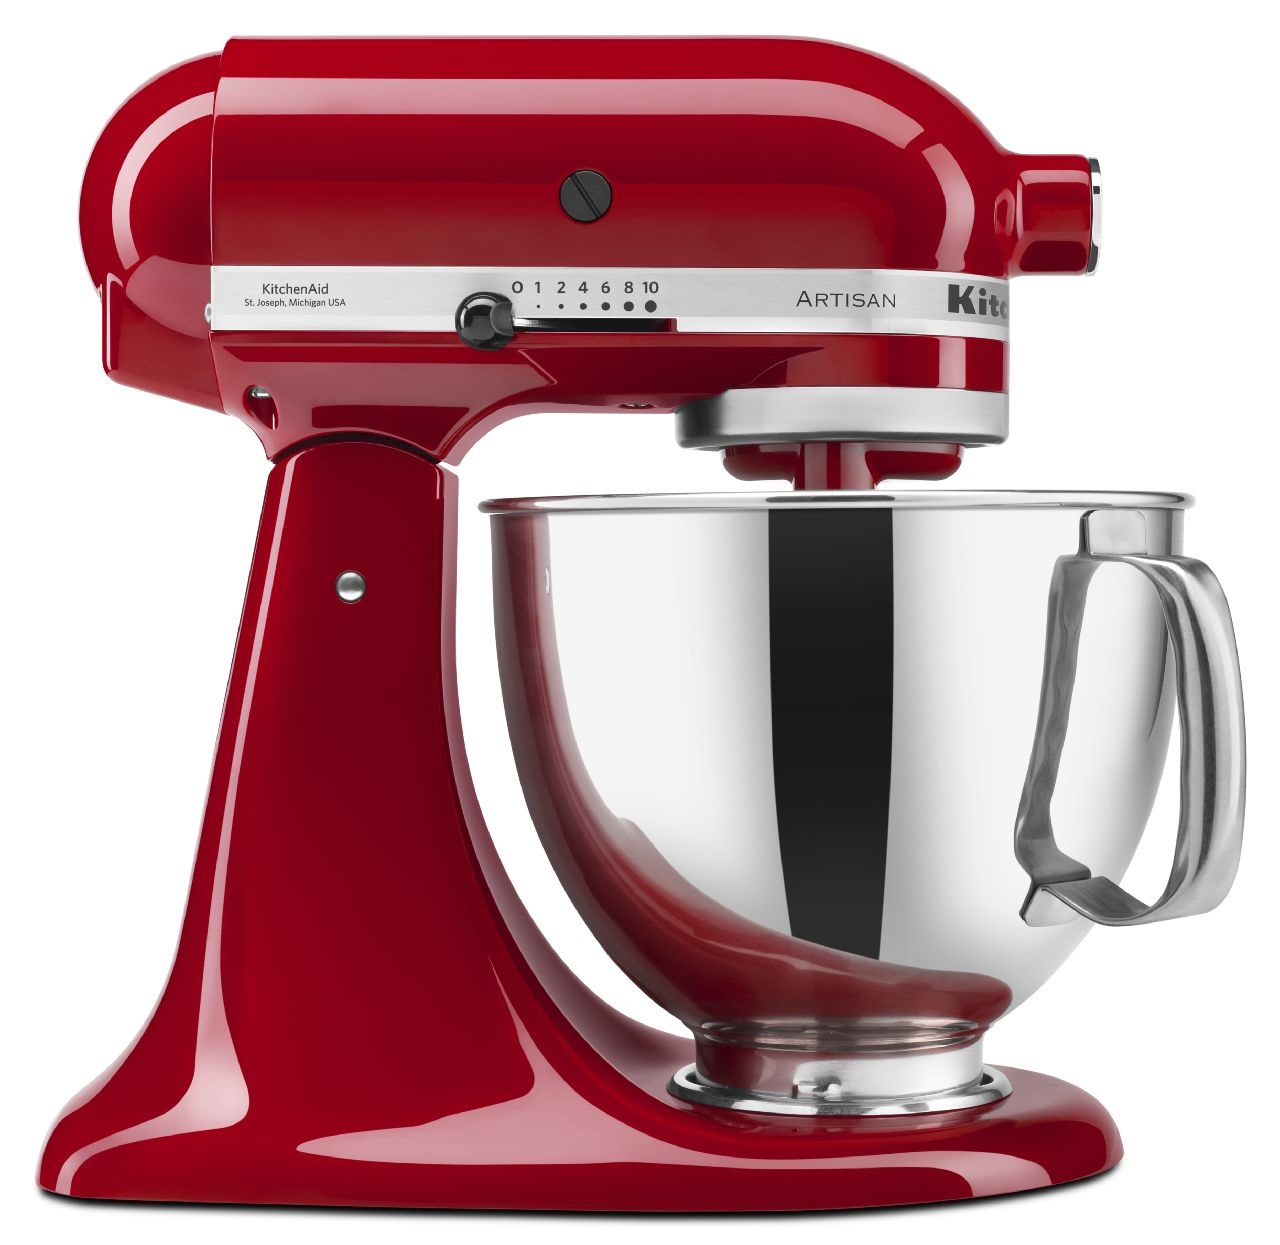 KitchenAid-Refurbished-Artisan-Series-5-Quart-Tilt-Head-Stand-Mixer-RRK150 thumbnail 43